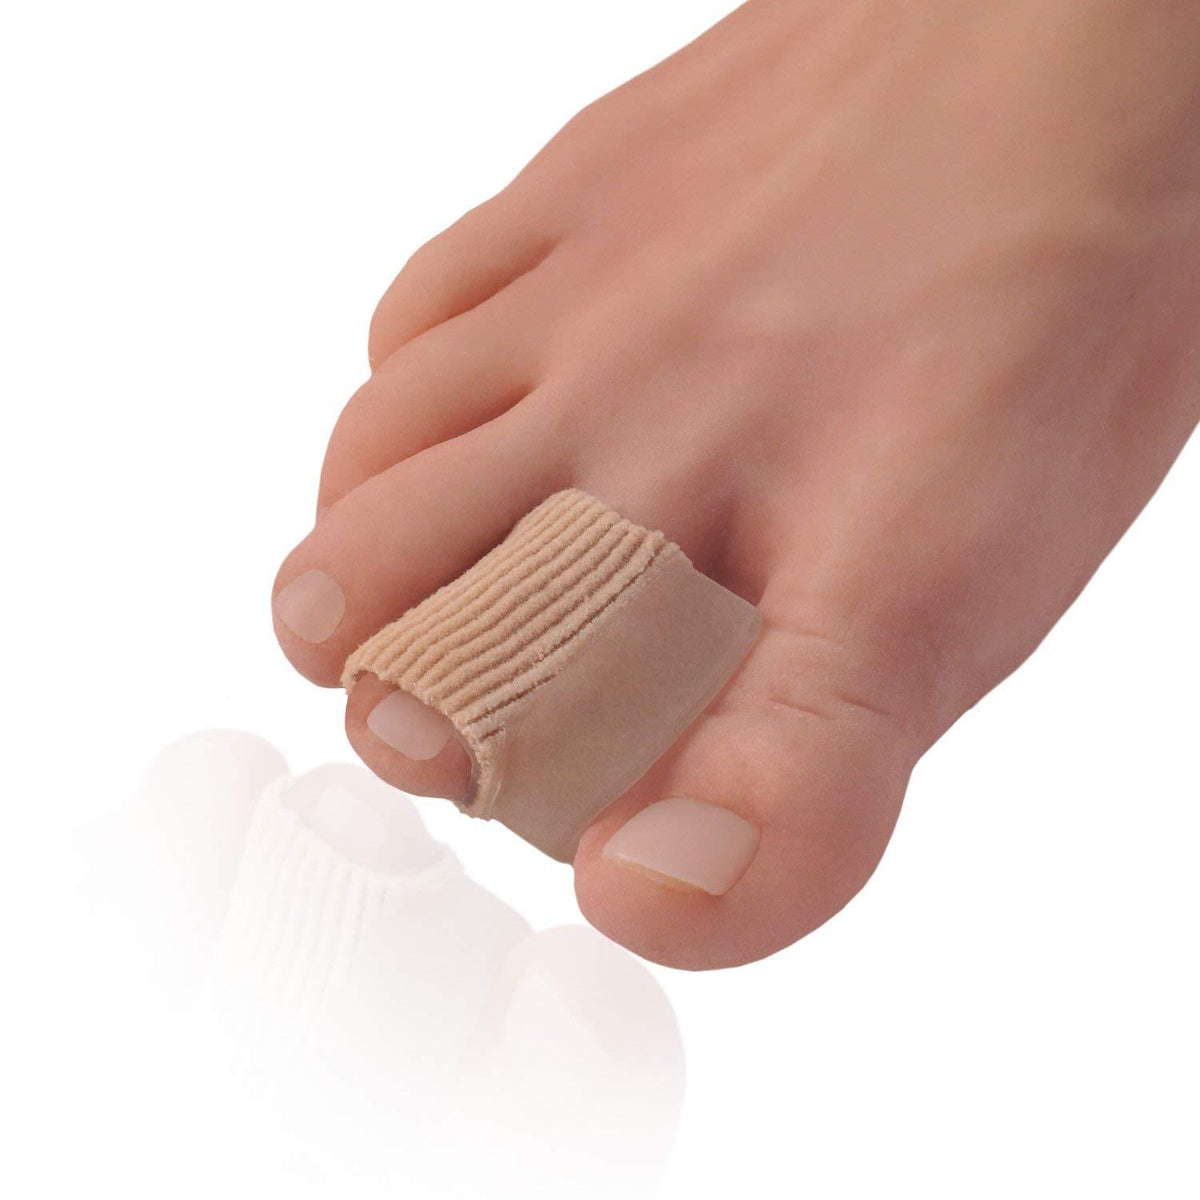 Dr. Frederick's Original Fabrigrip Toe Separators -- 2 Pieces - for Bunions & Overlapping Toes Foot Pain Dr. Frederick's Original